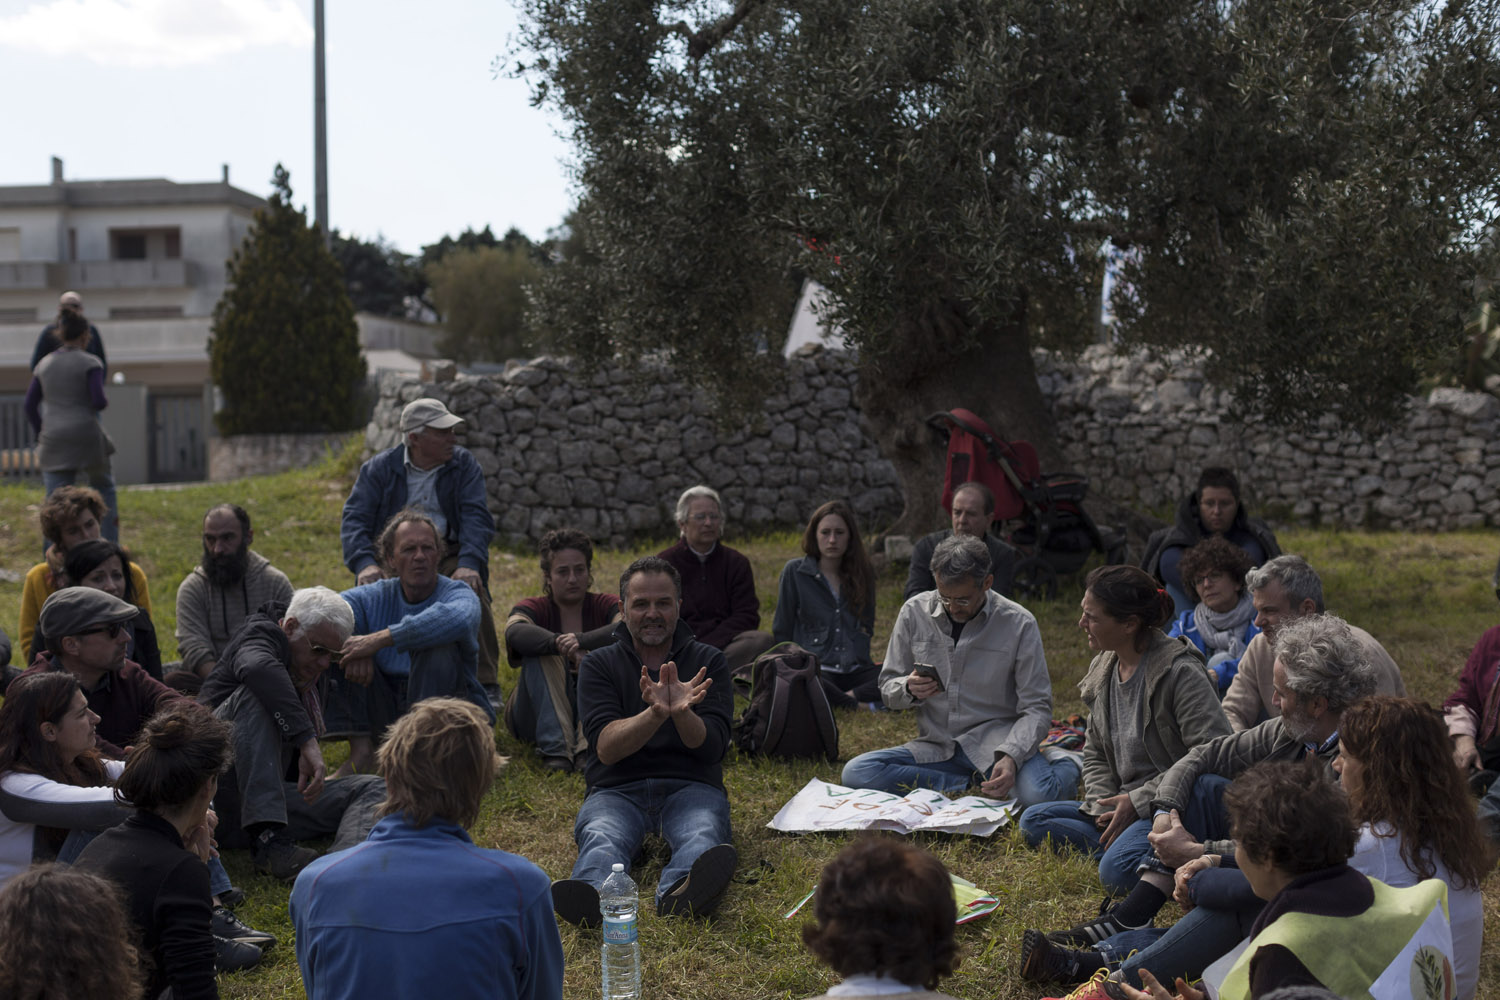 Activists discuss the crisis at the end of a demonstration against the eradication of olive trees in Cisternino, in an olive grove marked for destruction under the authorities' containment plans. According to the activists, these trees do not show signs of the disease, and if they are really infected by Xylella fastidiosa, they should then be studied as an example of coexistence with the bacteria. (2018)